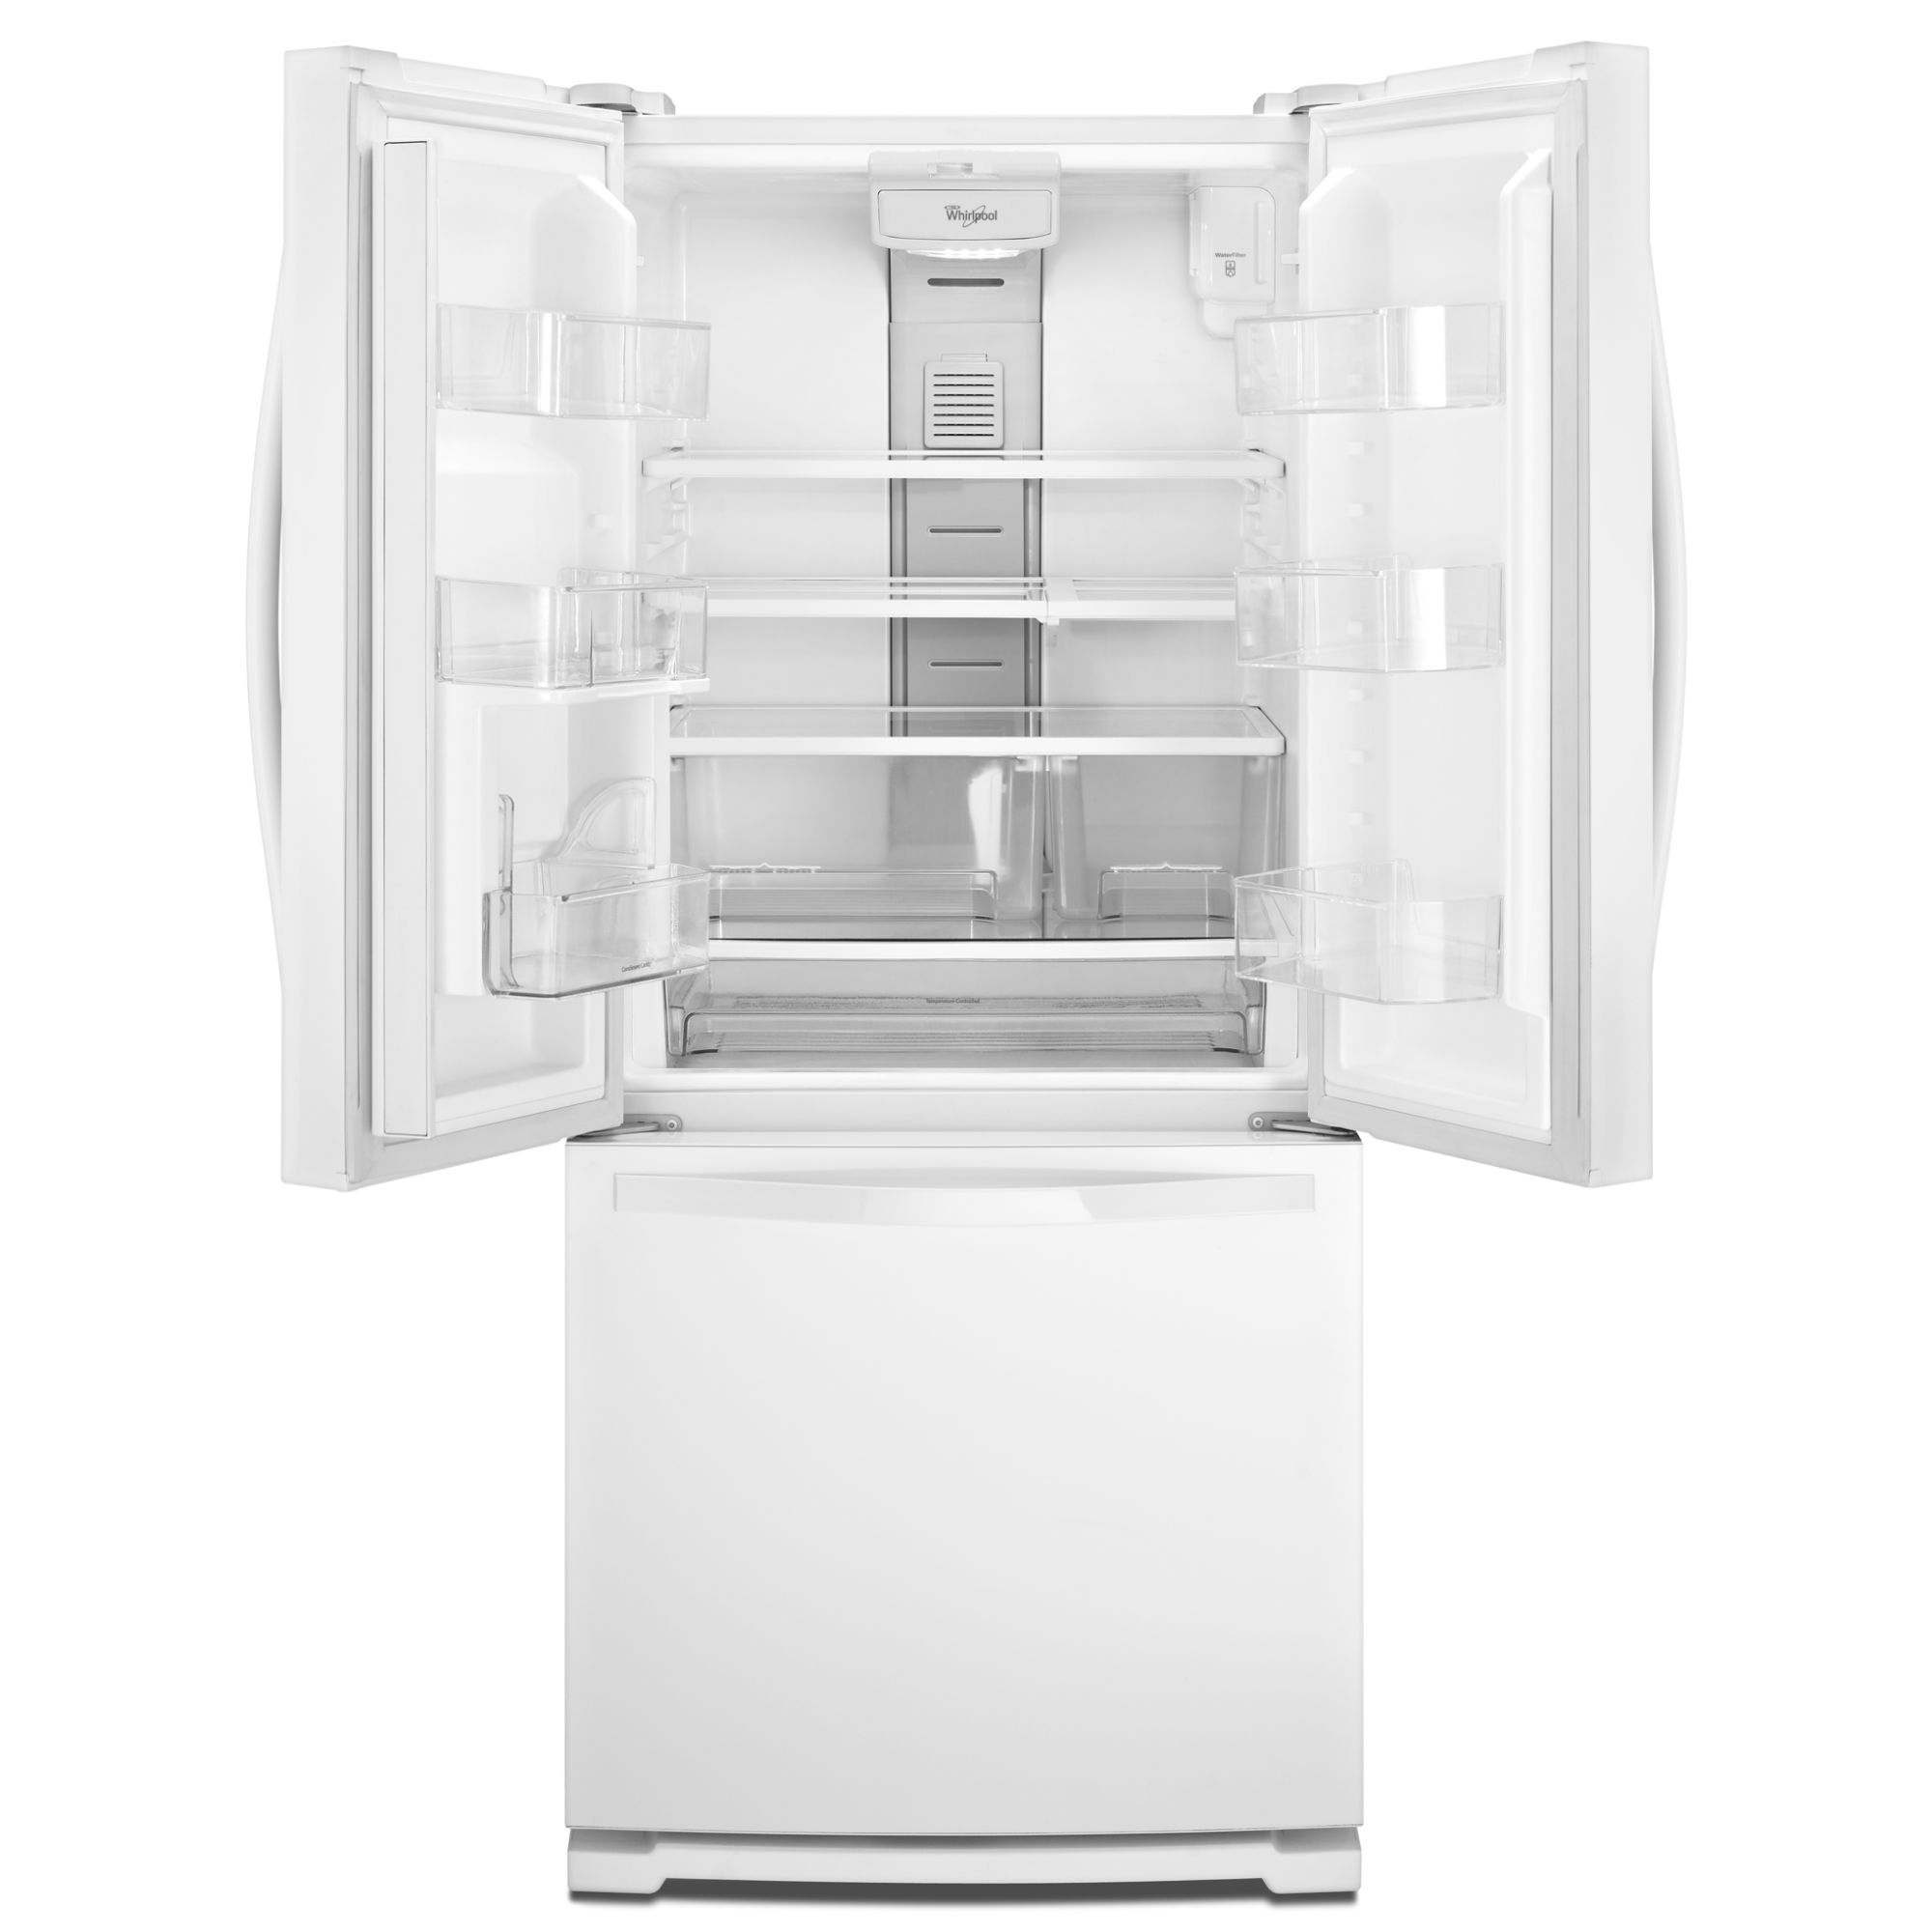 Whirlpool WRF560SMYW 19.7 cu. ft. White Bottom-Freezer French Door Refrigerator